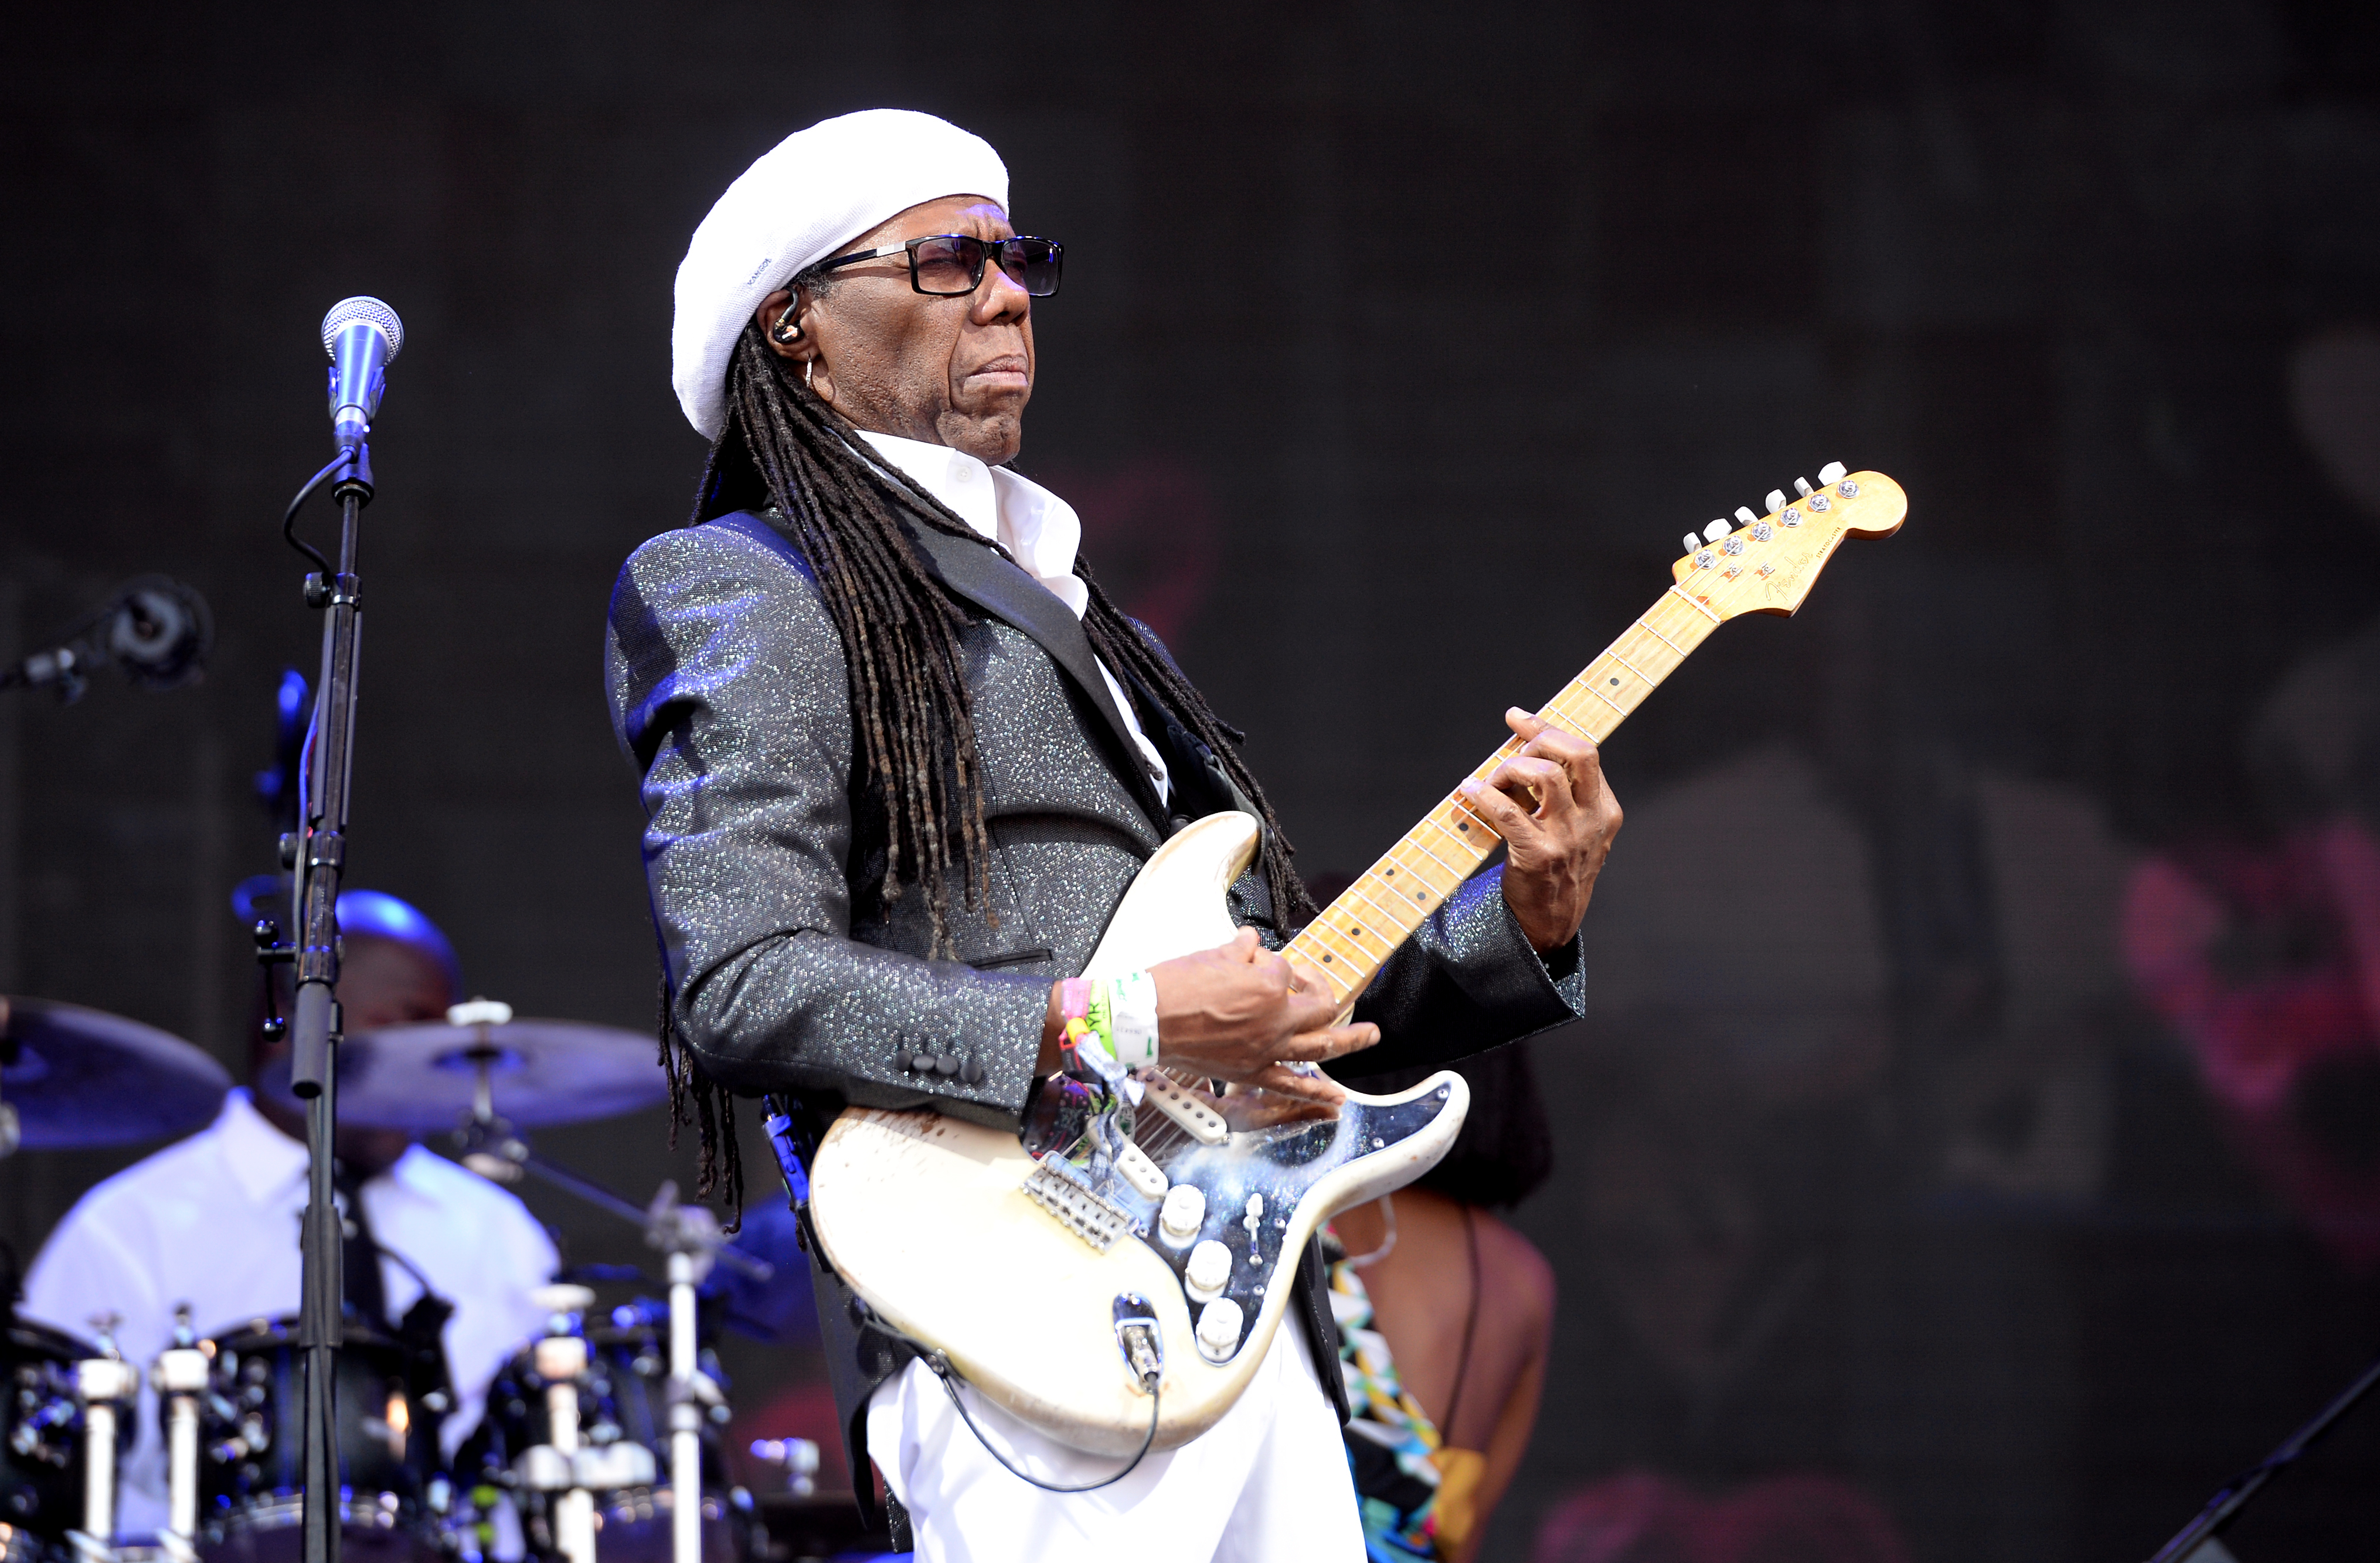 Nile Rodgers and Chic performing on the Pyramid Stage at Glastonbury